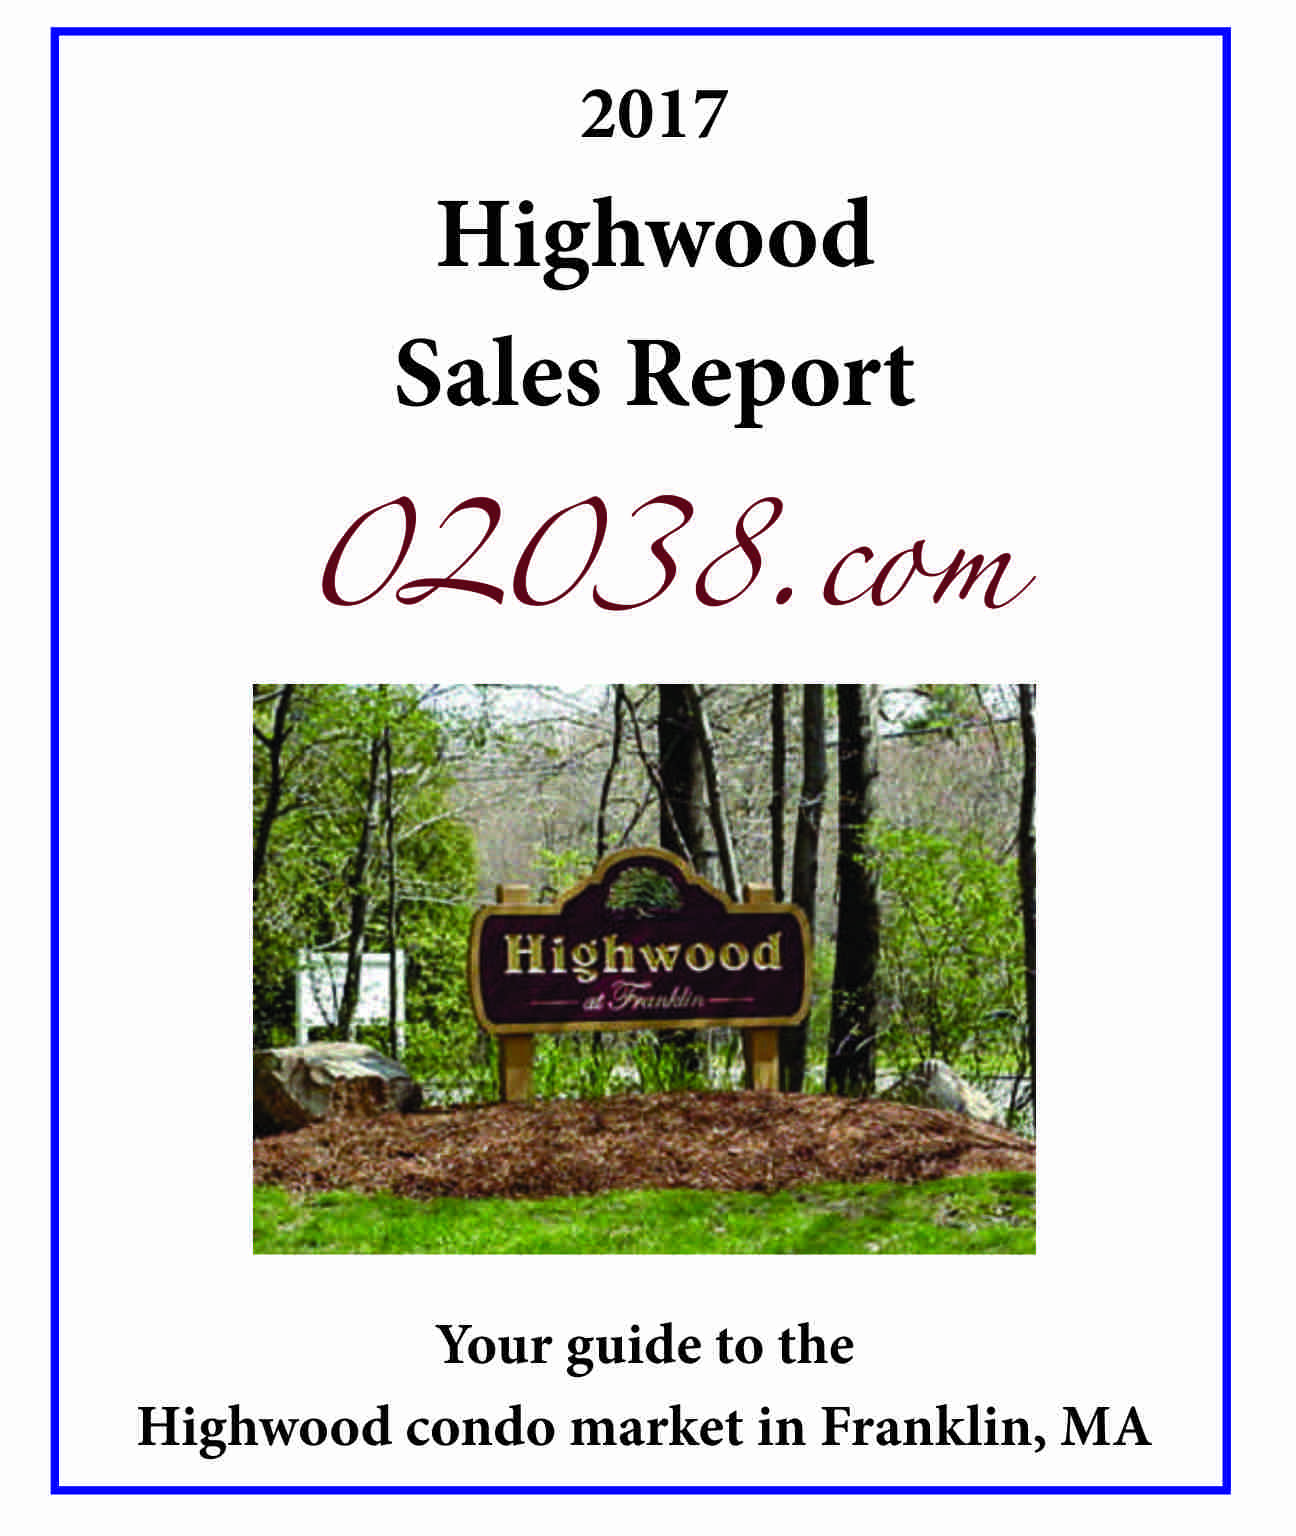 Highwood Condos 2017 Sales Report